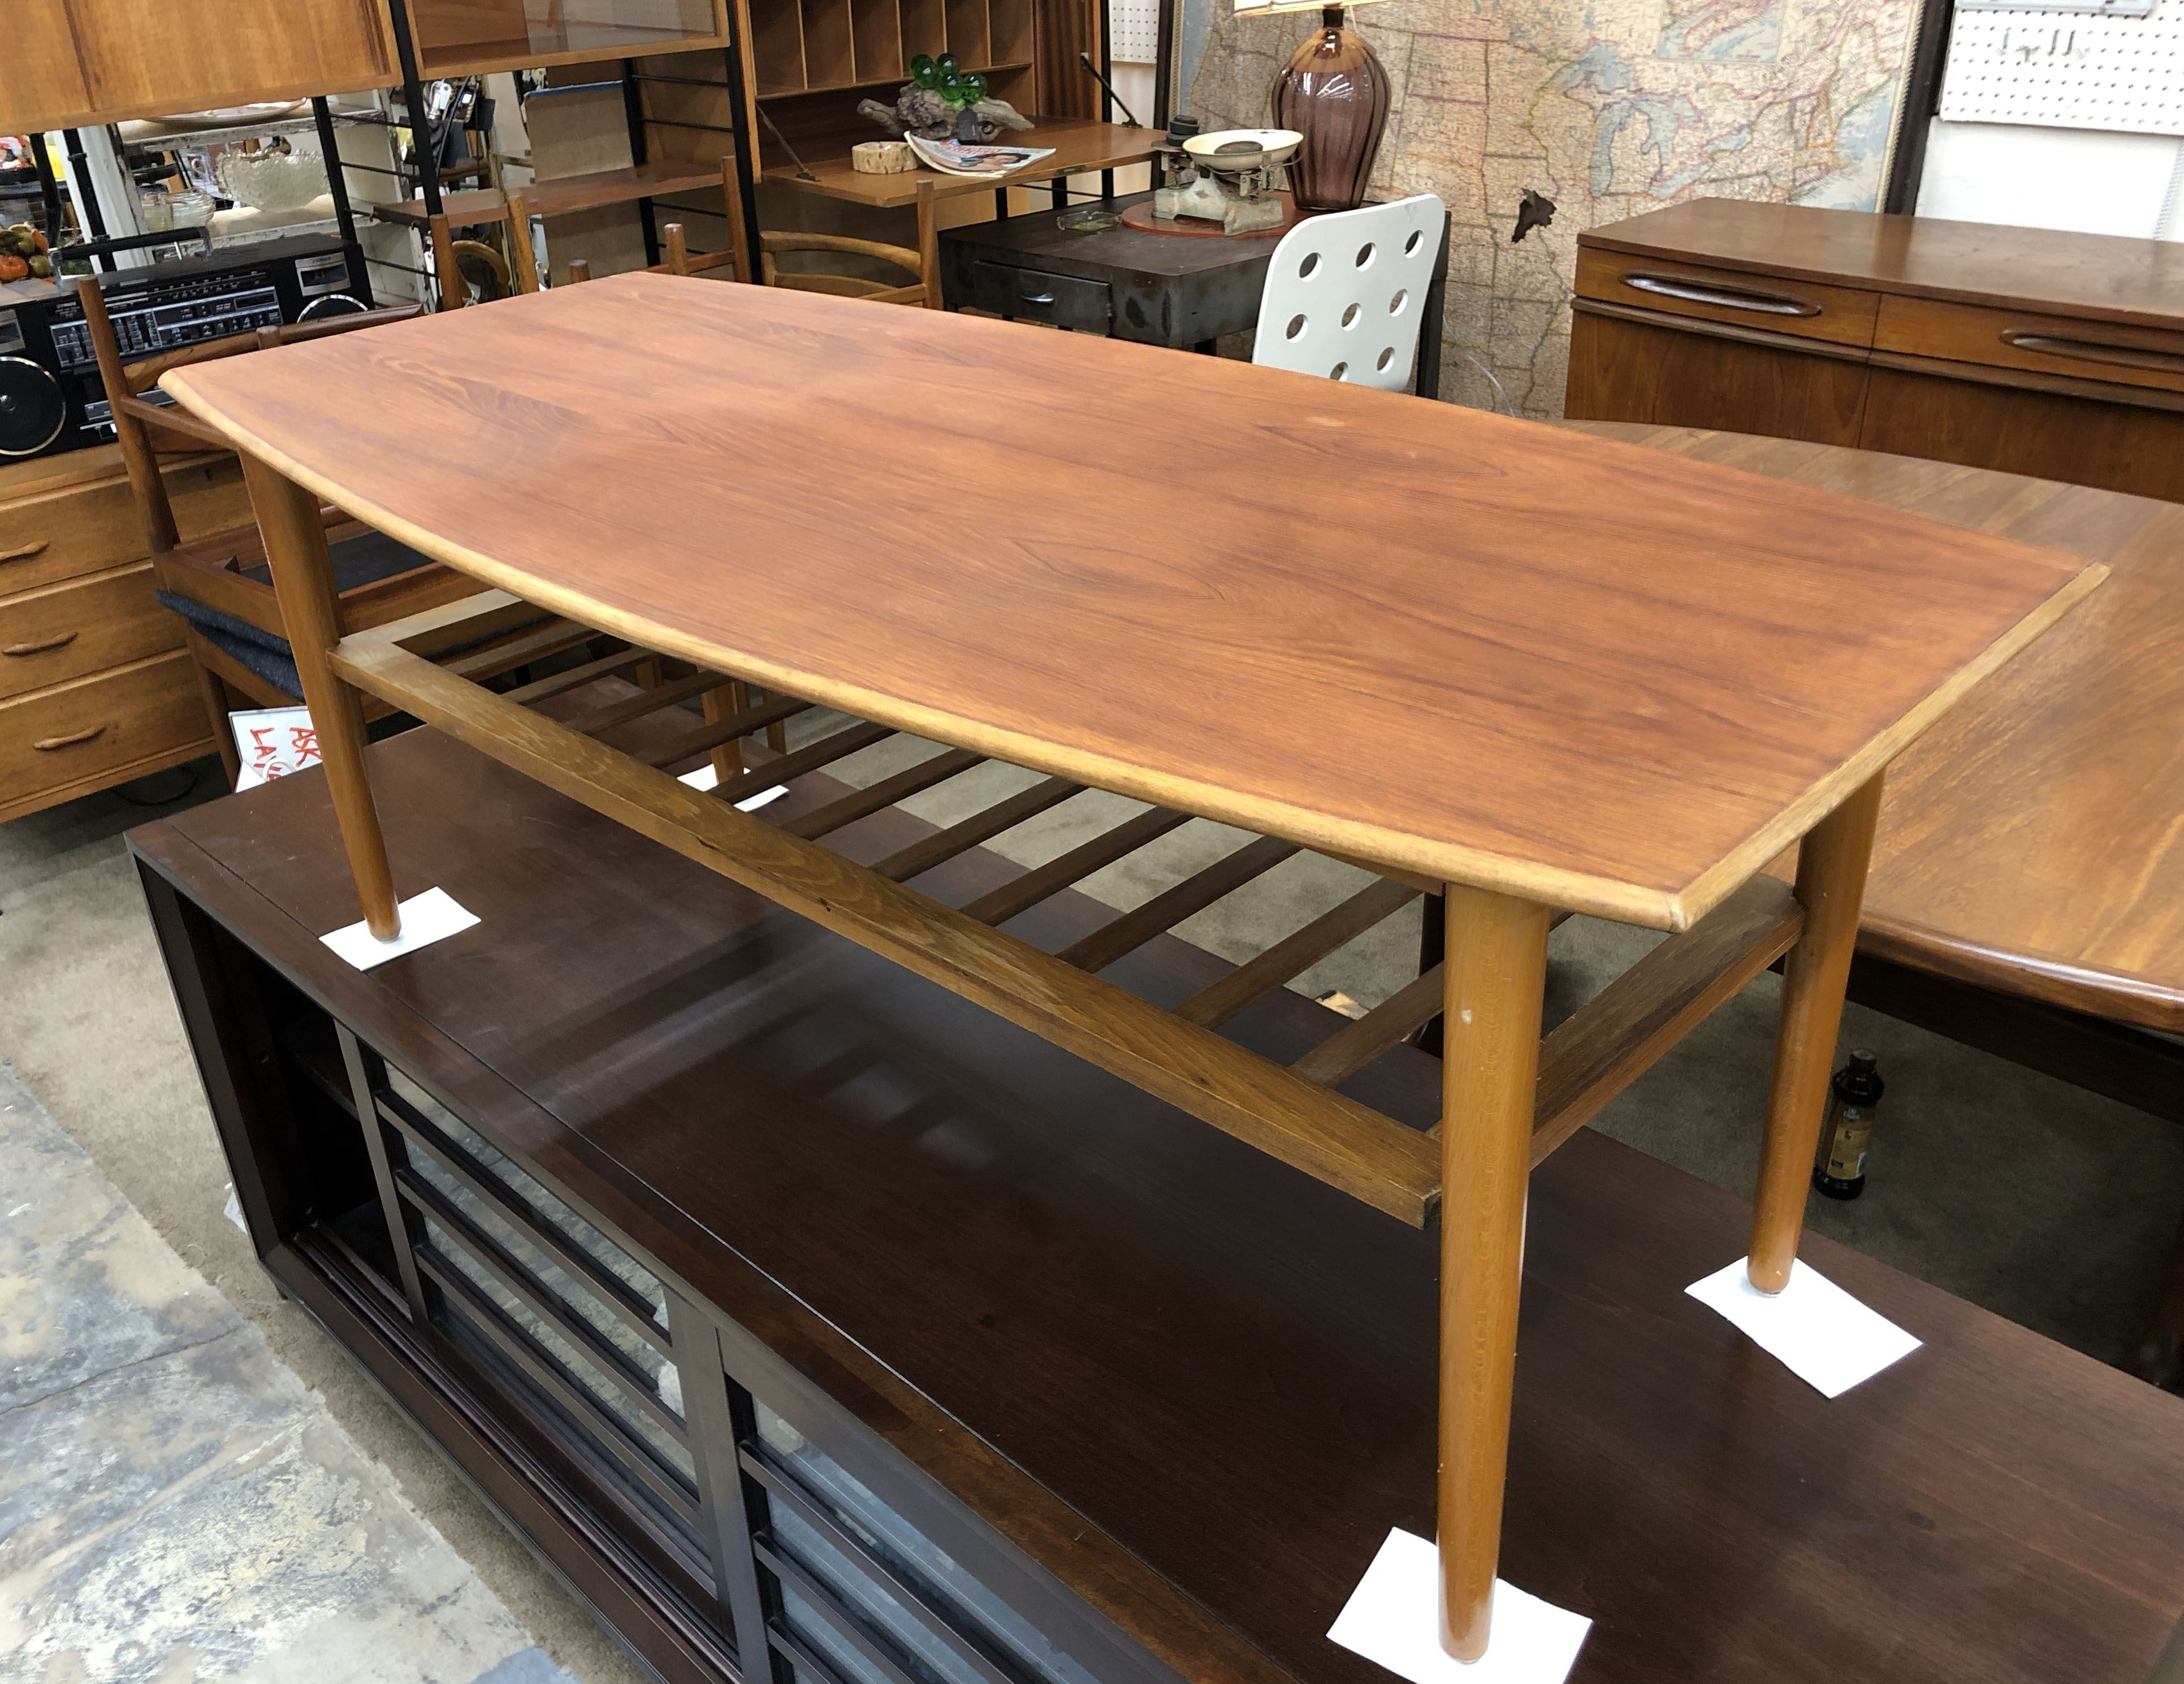 Mid Century Modern Teak Coffee Table With Magazine Rack 47 Wide 495 Mid Century Dallas Booth 766 Lula B S 1010 N Ri Mid Century Furniture In 2019 Teak Coffee Table Table Mid Century Furniture